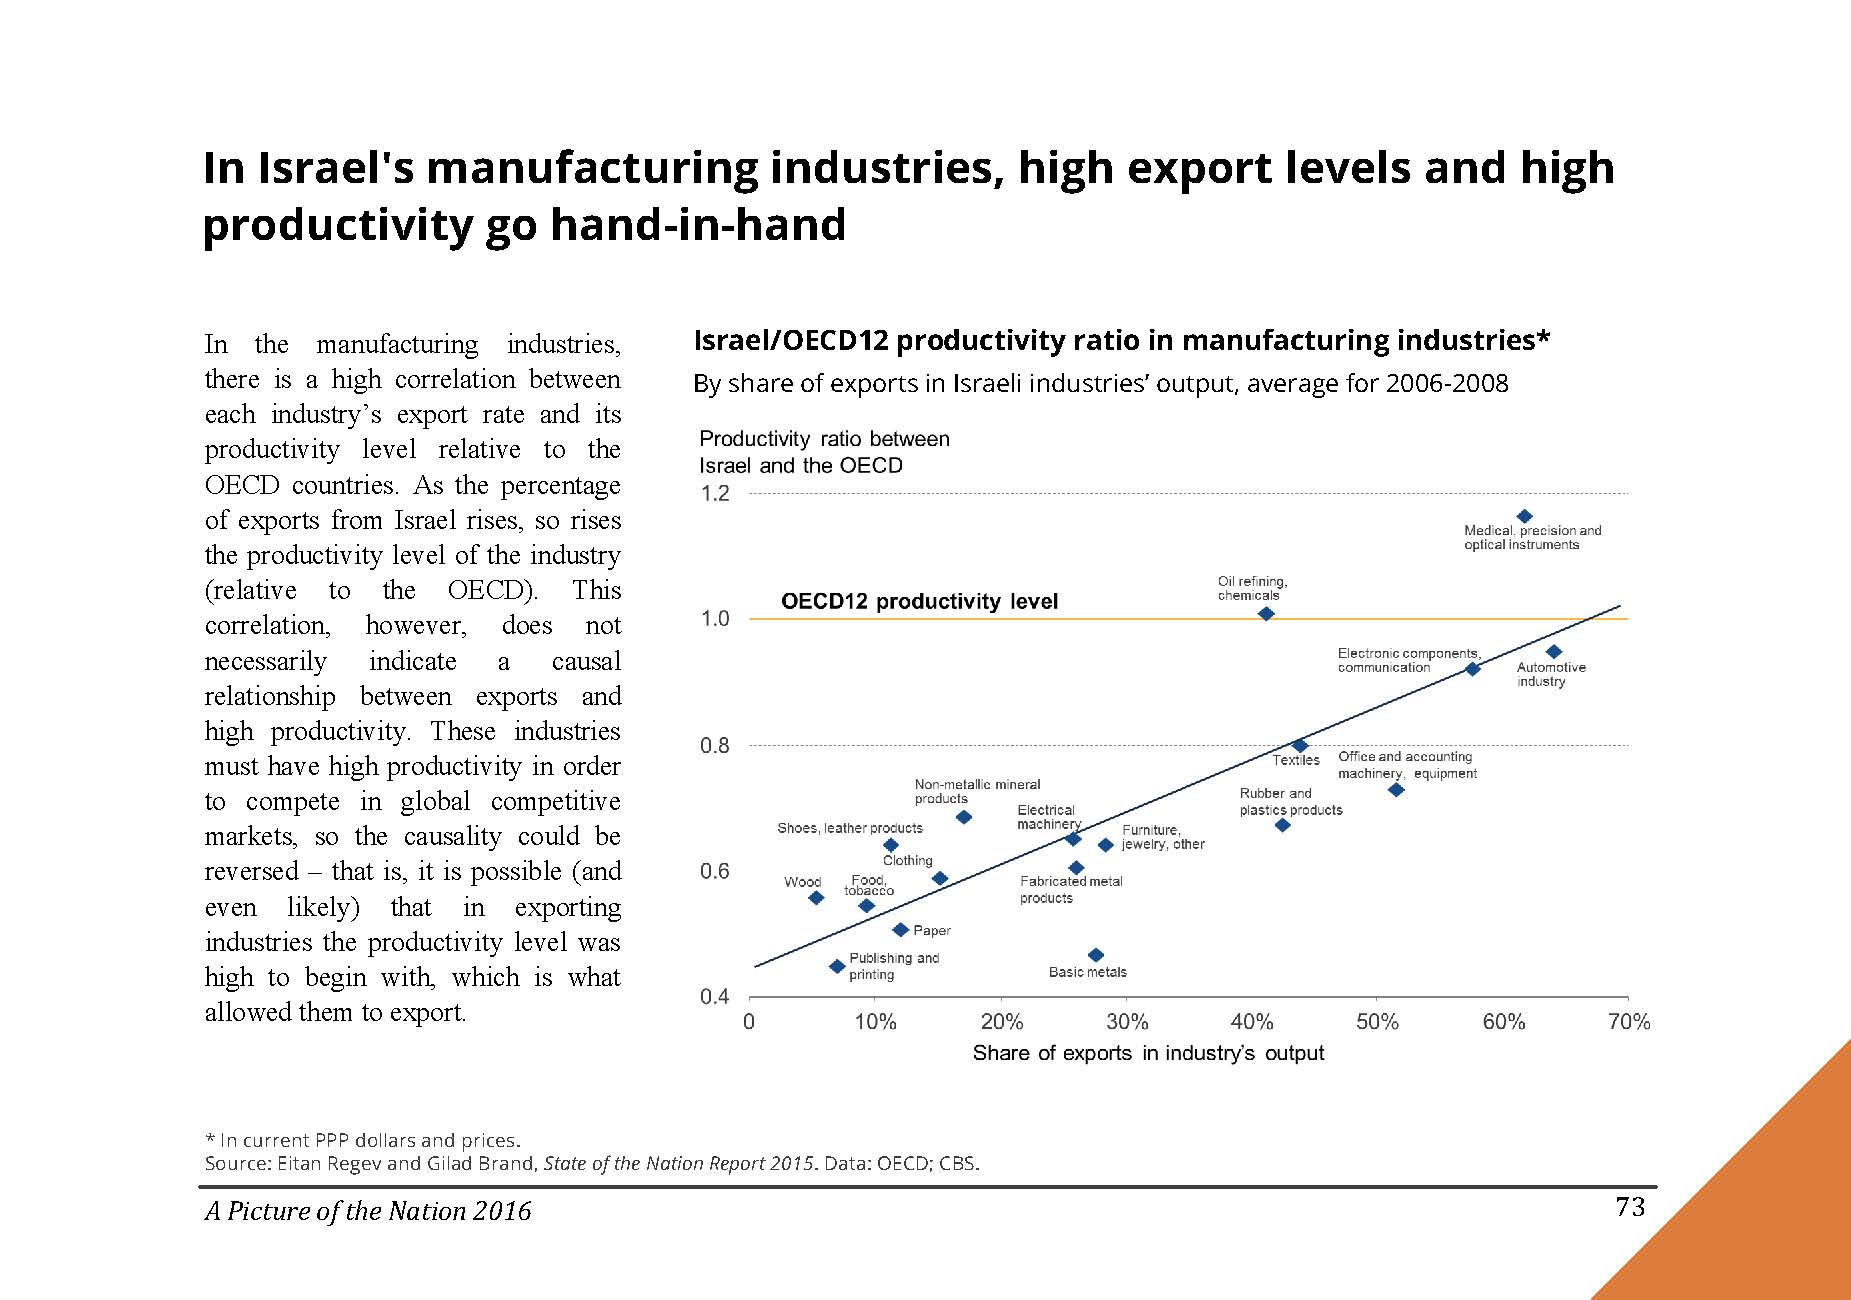 In Israel's manufacturing industries, high export levels and high productivity go hand-in-hand